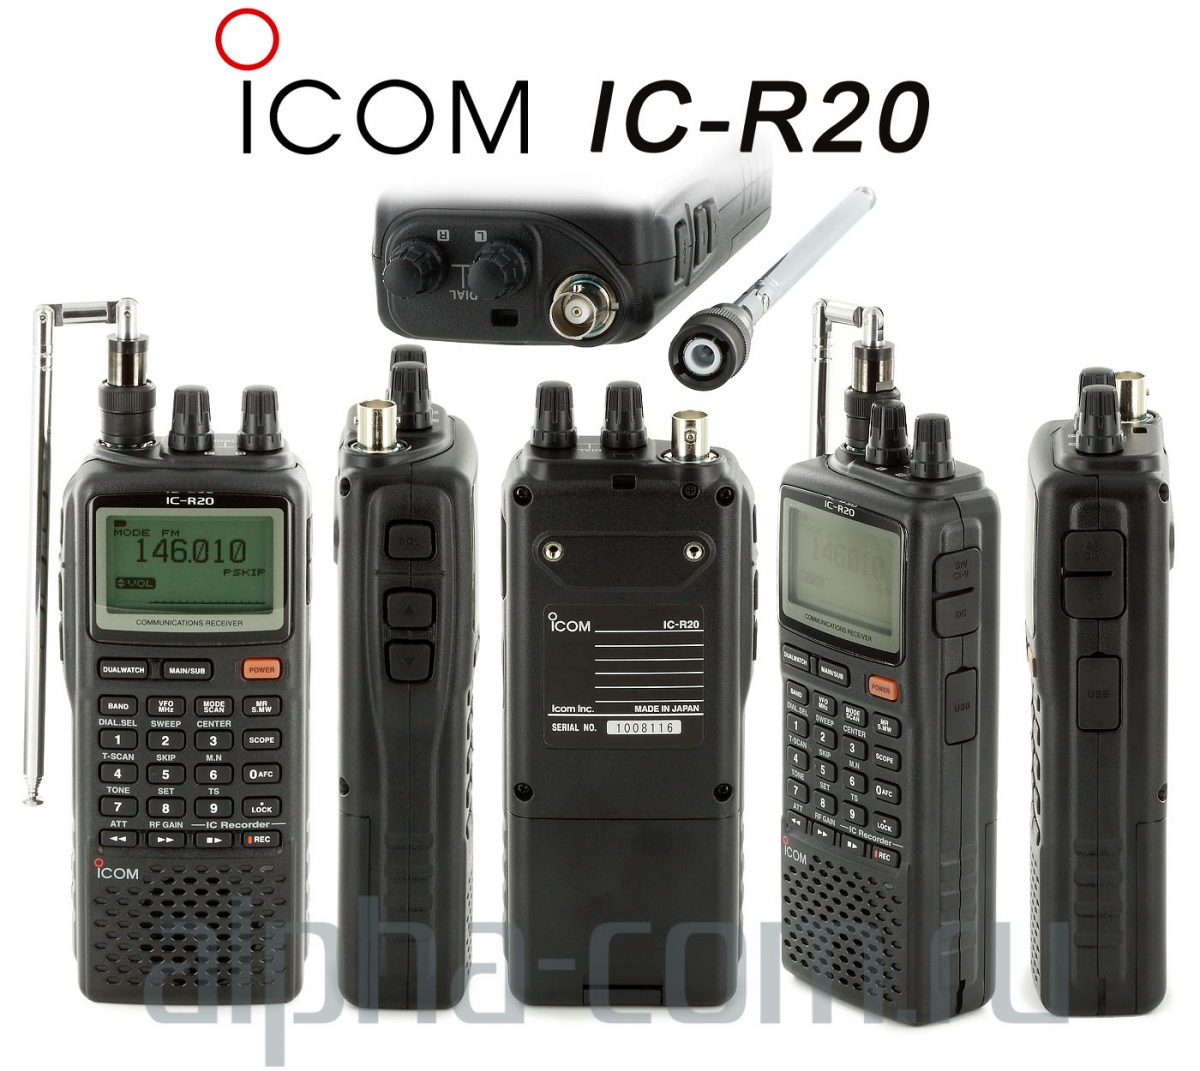 Icom IC-R20 back